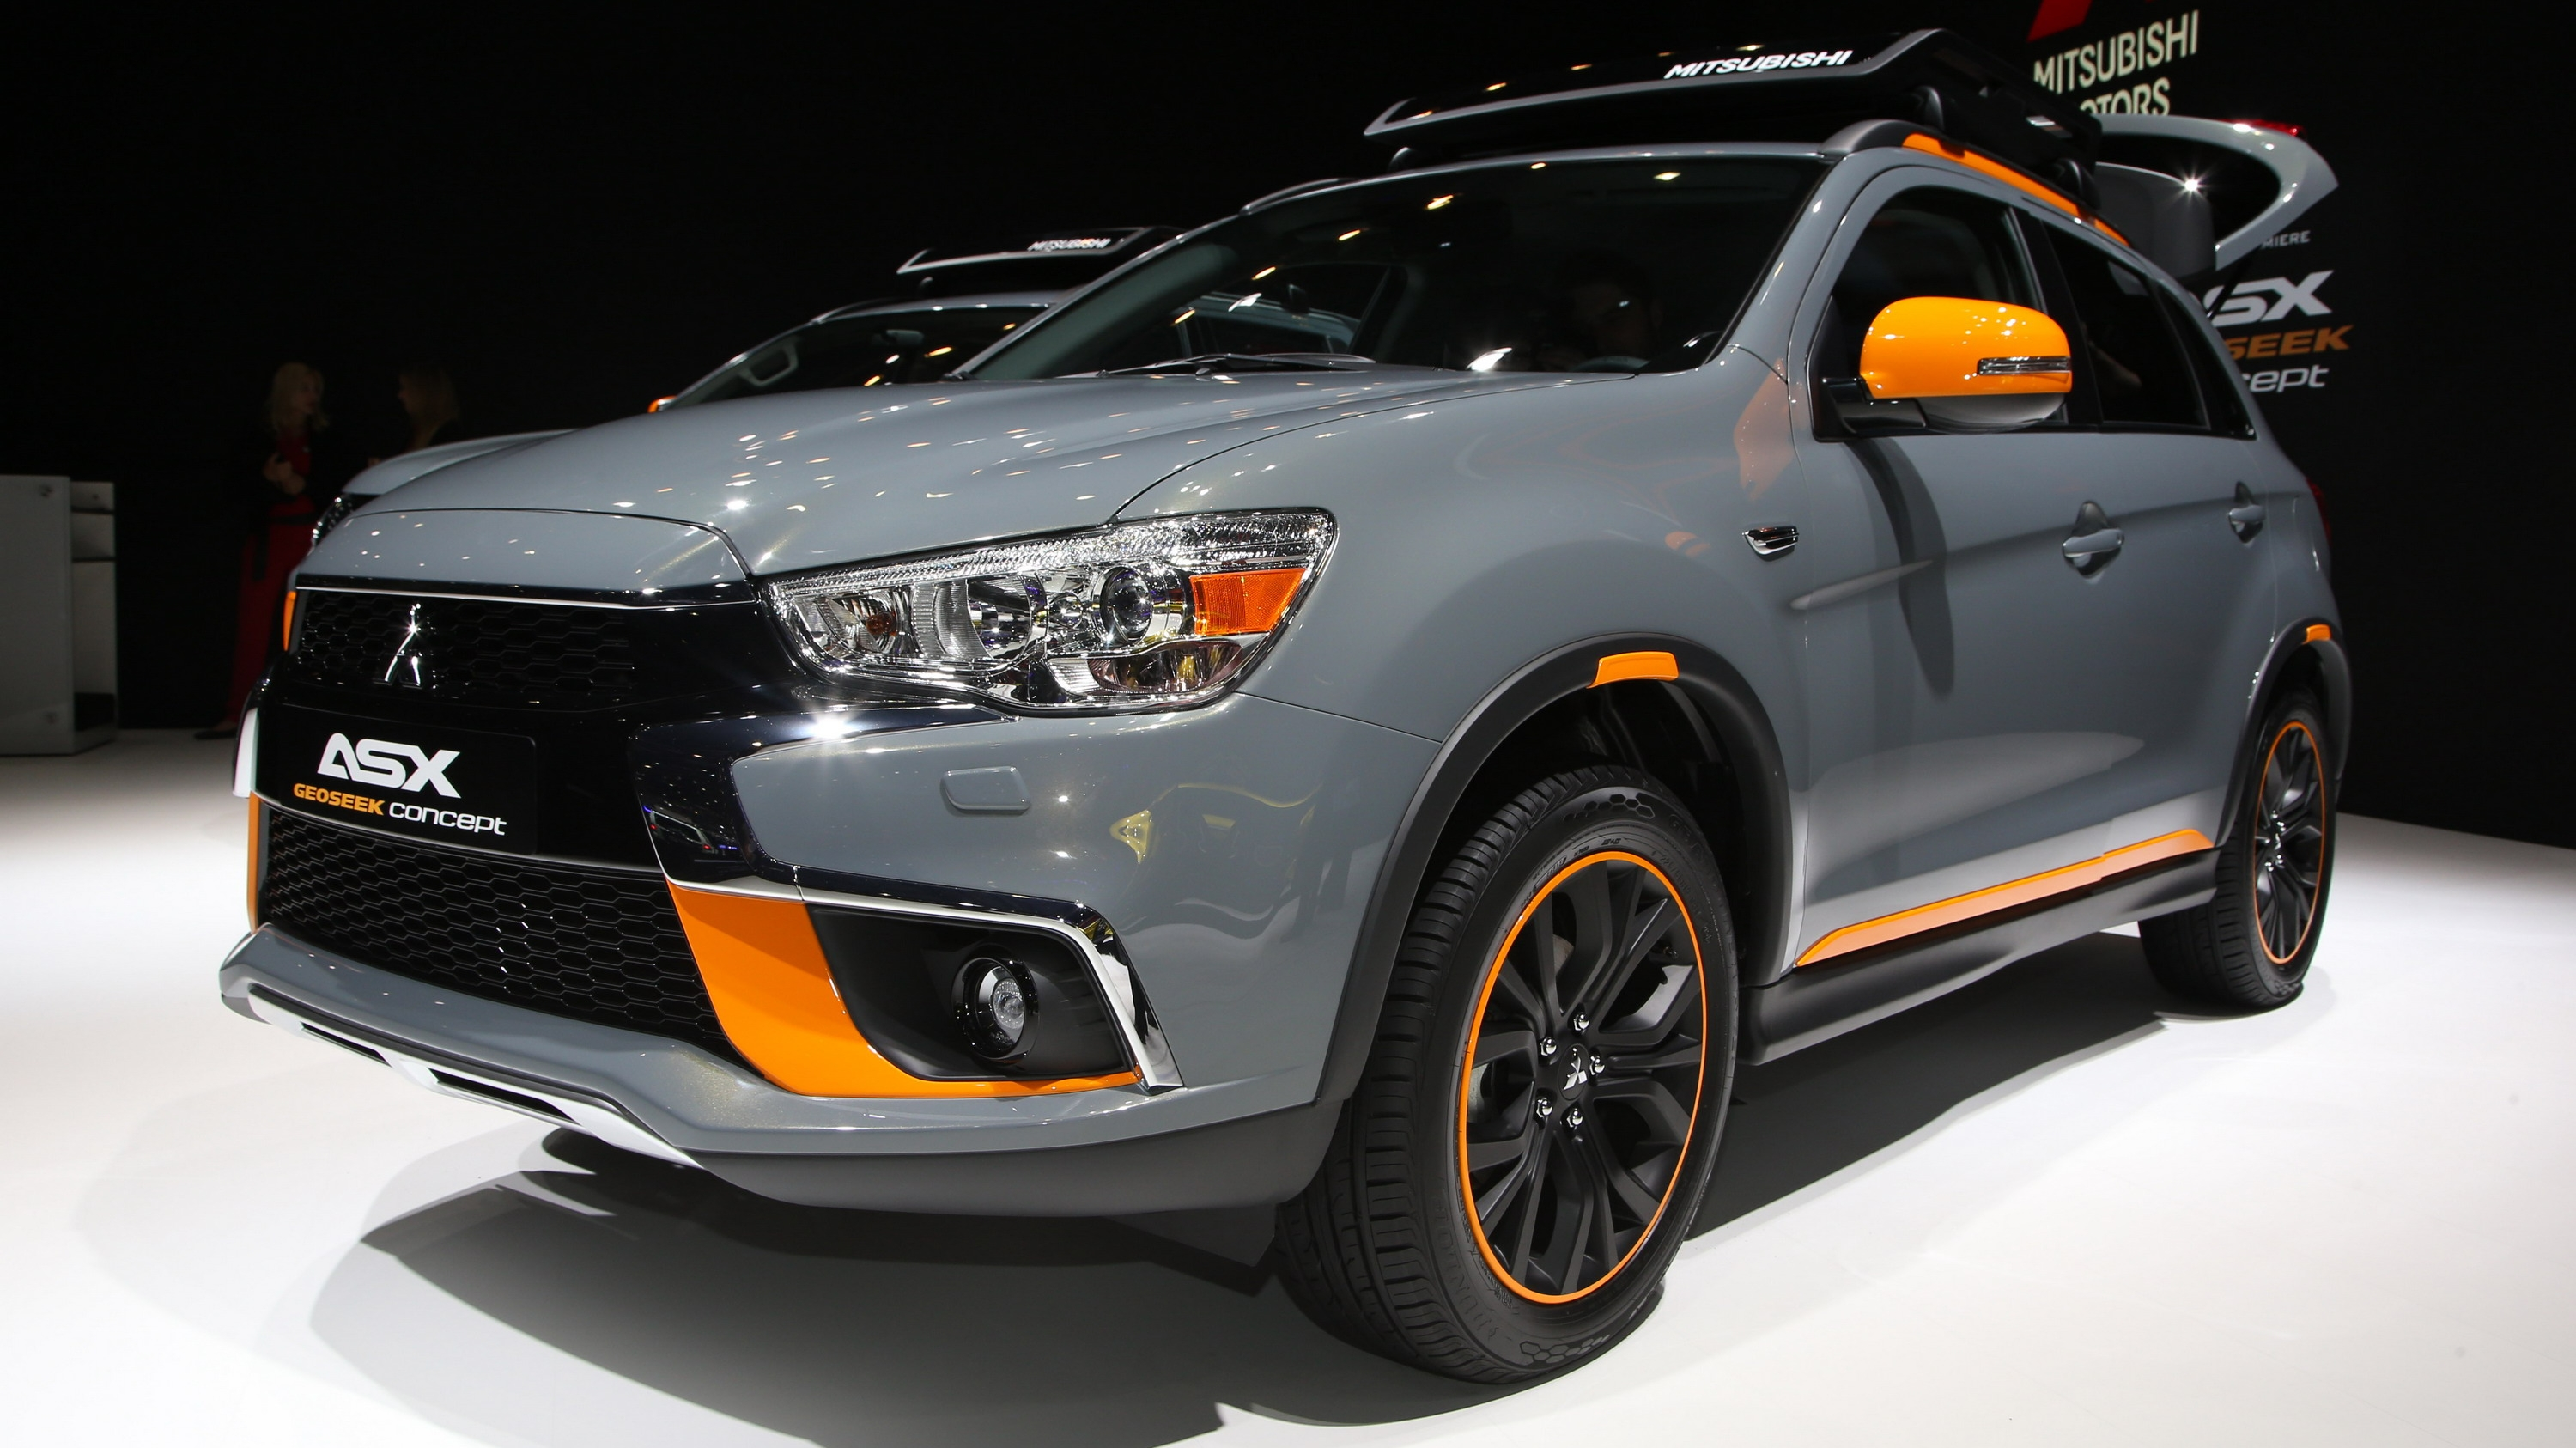 2016 mitsubishi asx geoseek concept top speed. Black Bedroom Furniture Sets. Home Design Ideas